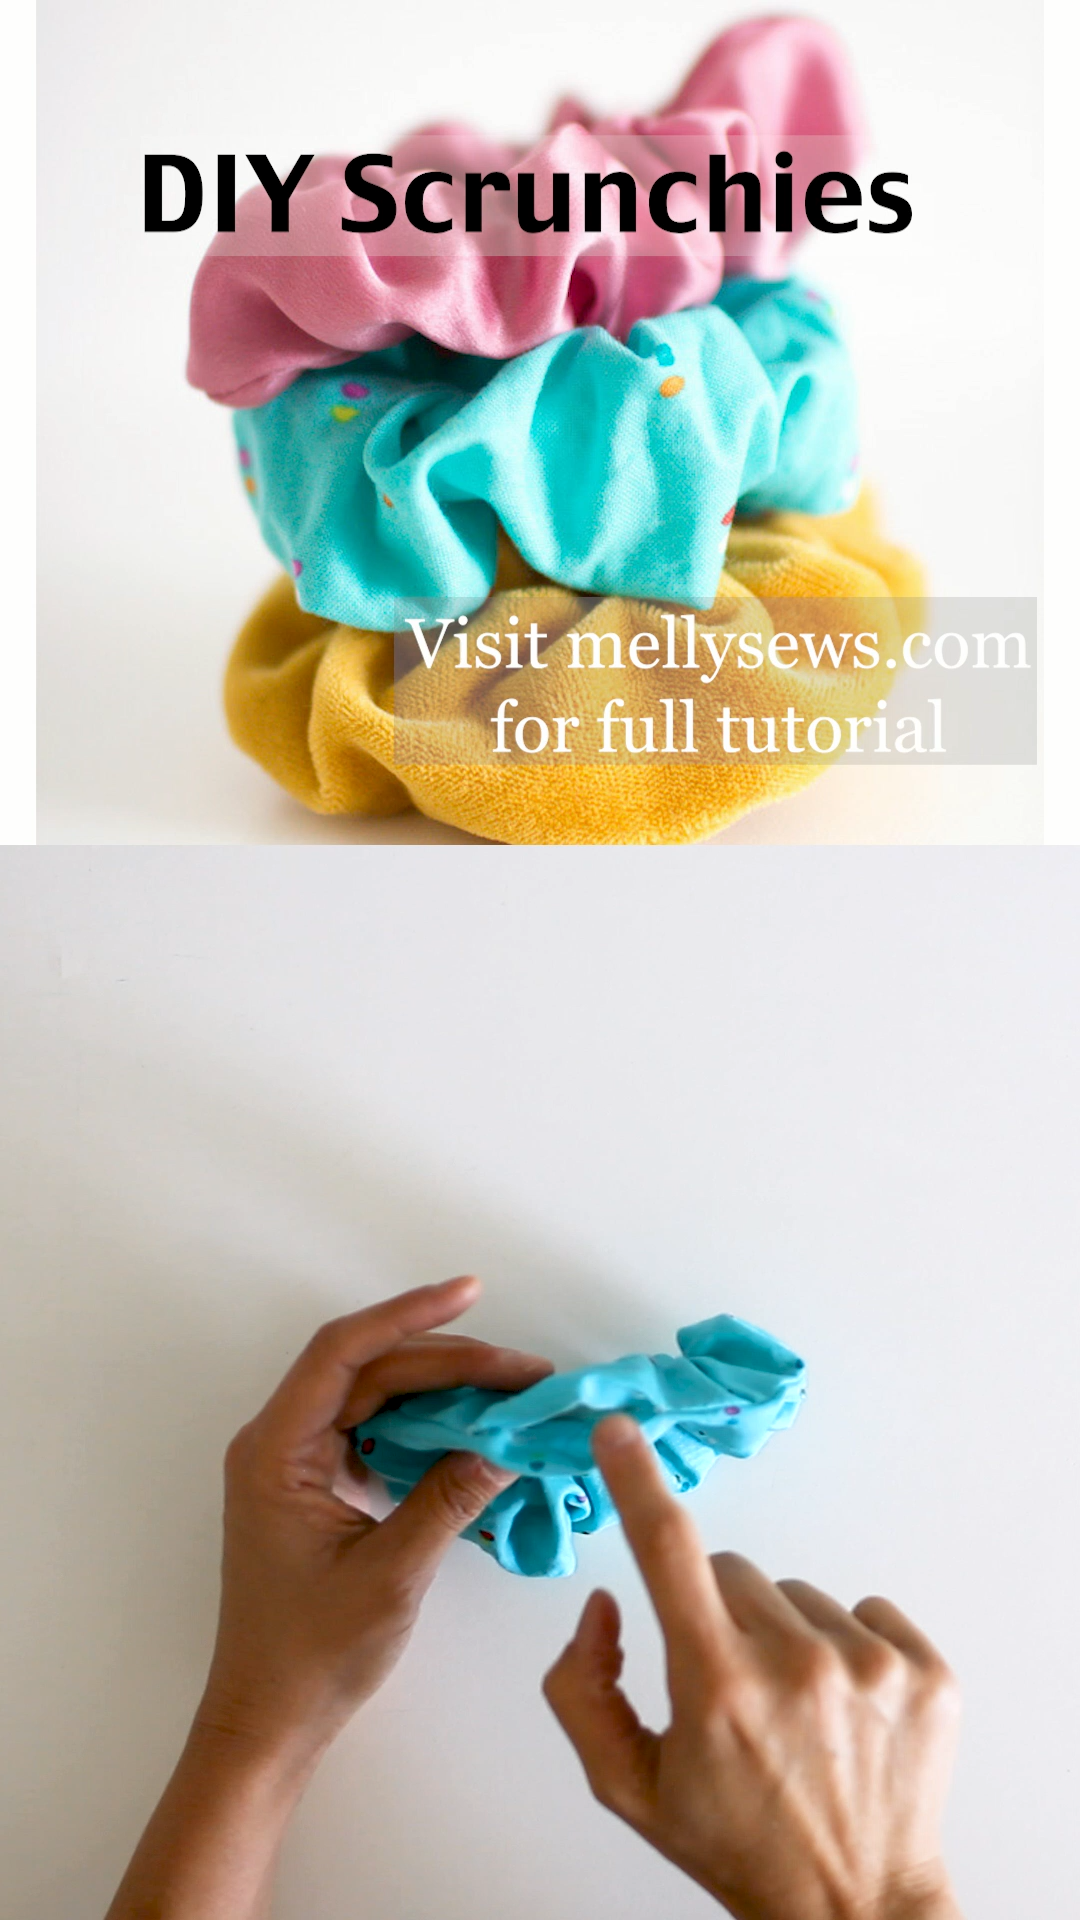 How to Make a Scrunchie - Beginner sewing projects easy, Scrunchies diy, How to make scrunchies, Sewing projects for beginners, Hair ties diy, Diy hair scrunchies - How to make scrunchies  DIY hair ties tutorial  Melly Sews